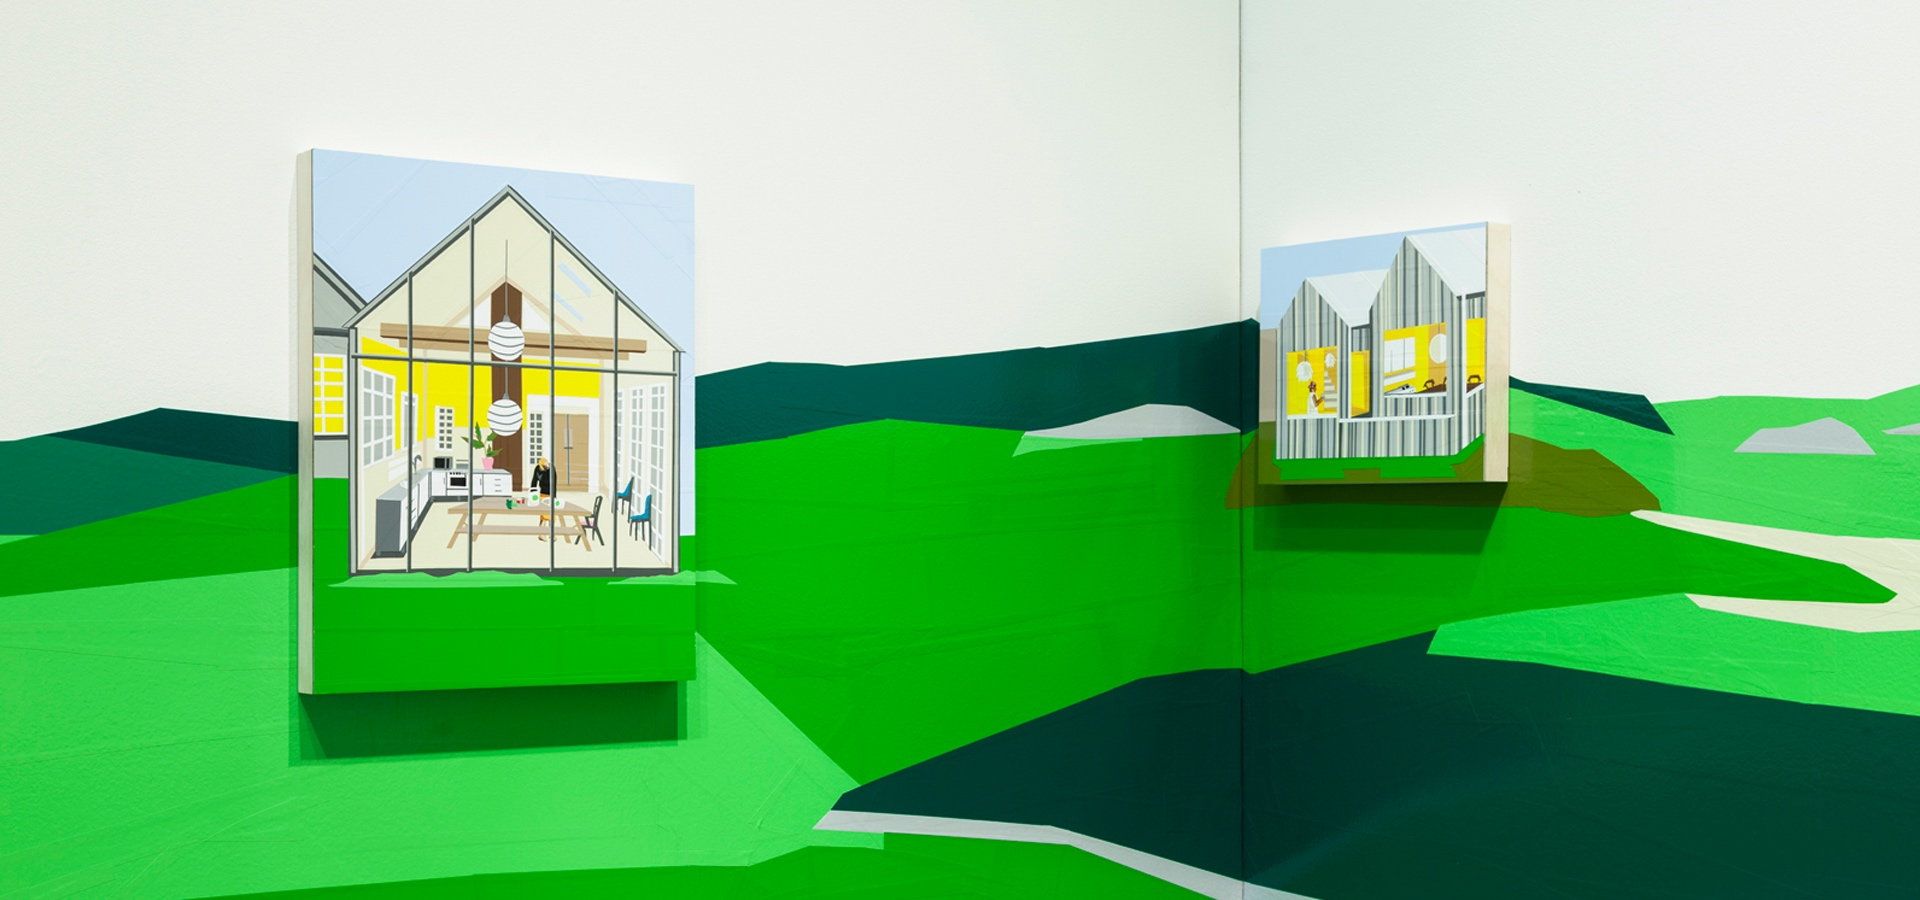 scenes looking into windows of home made from cut vinyl